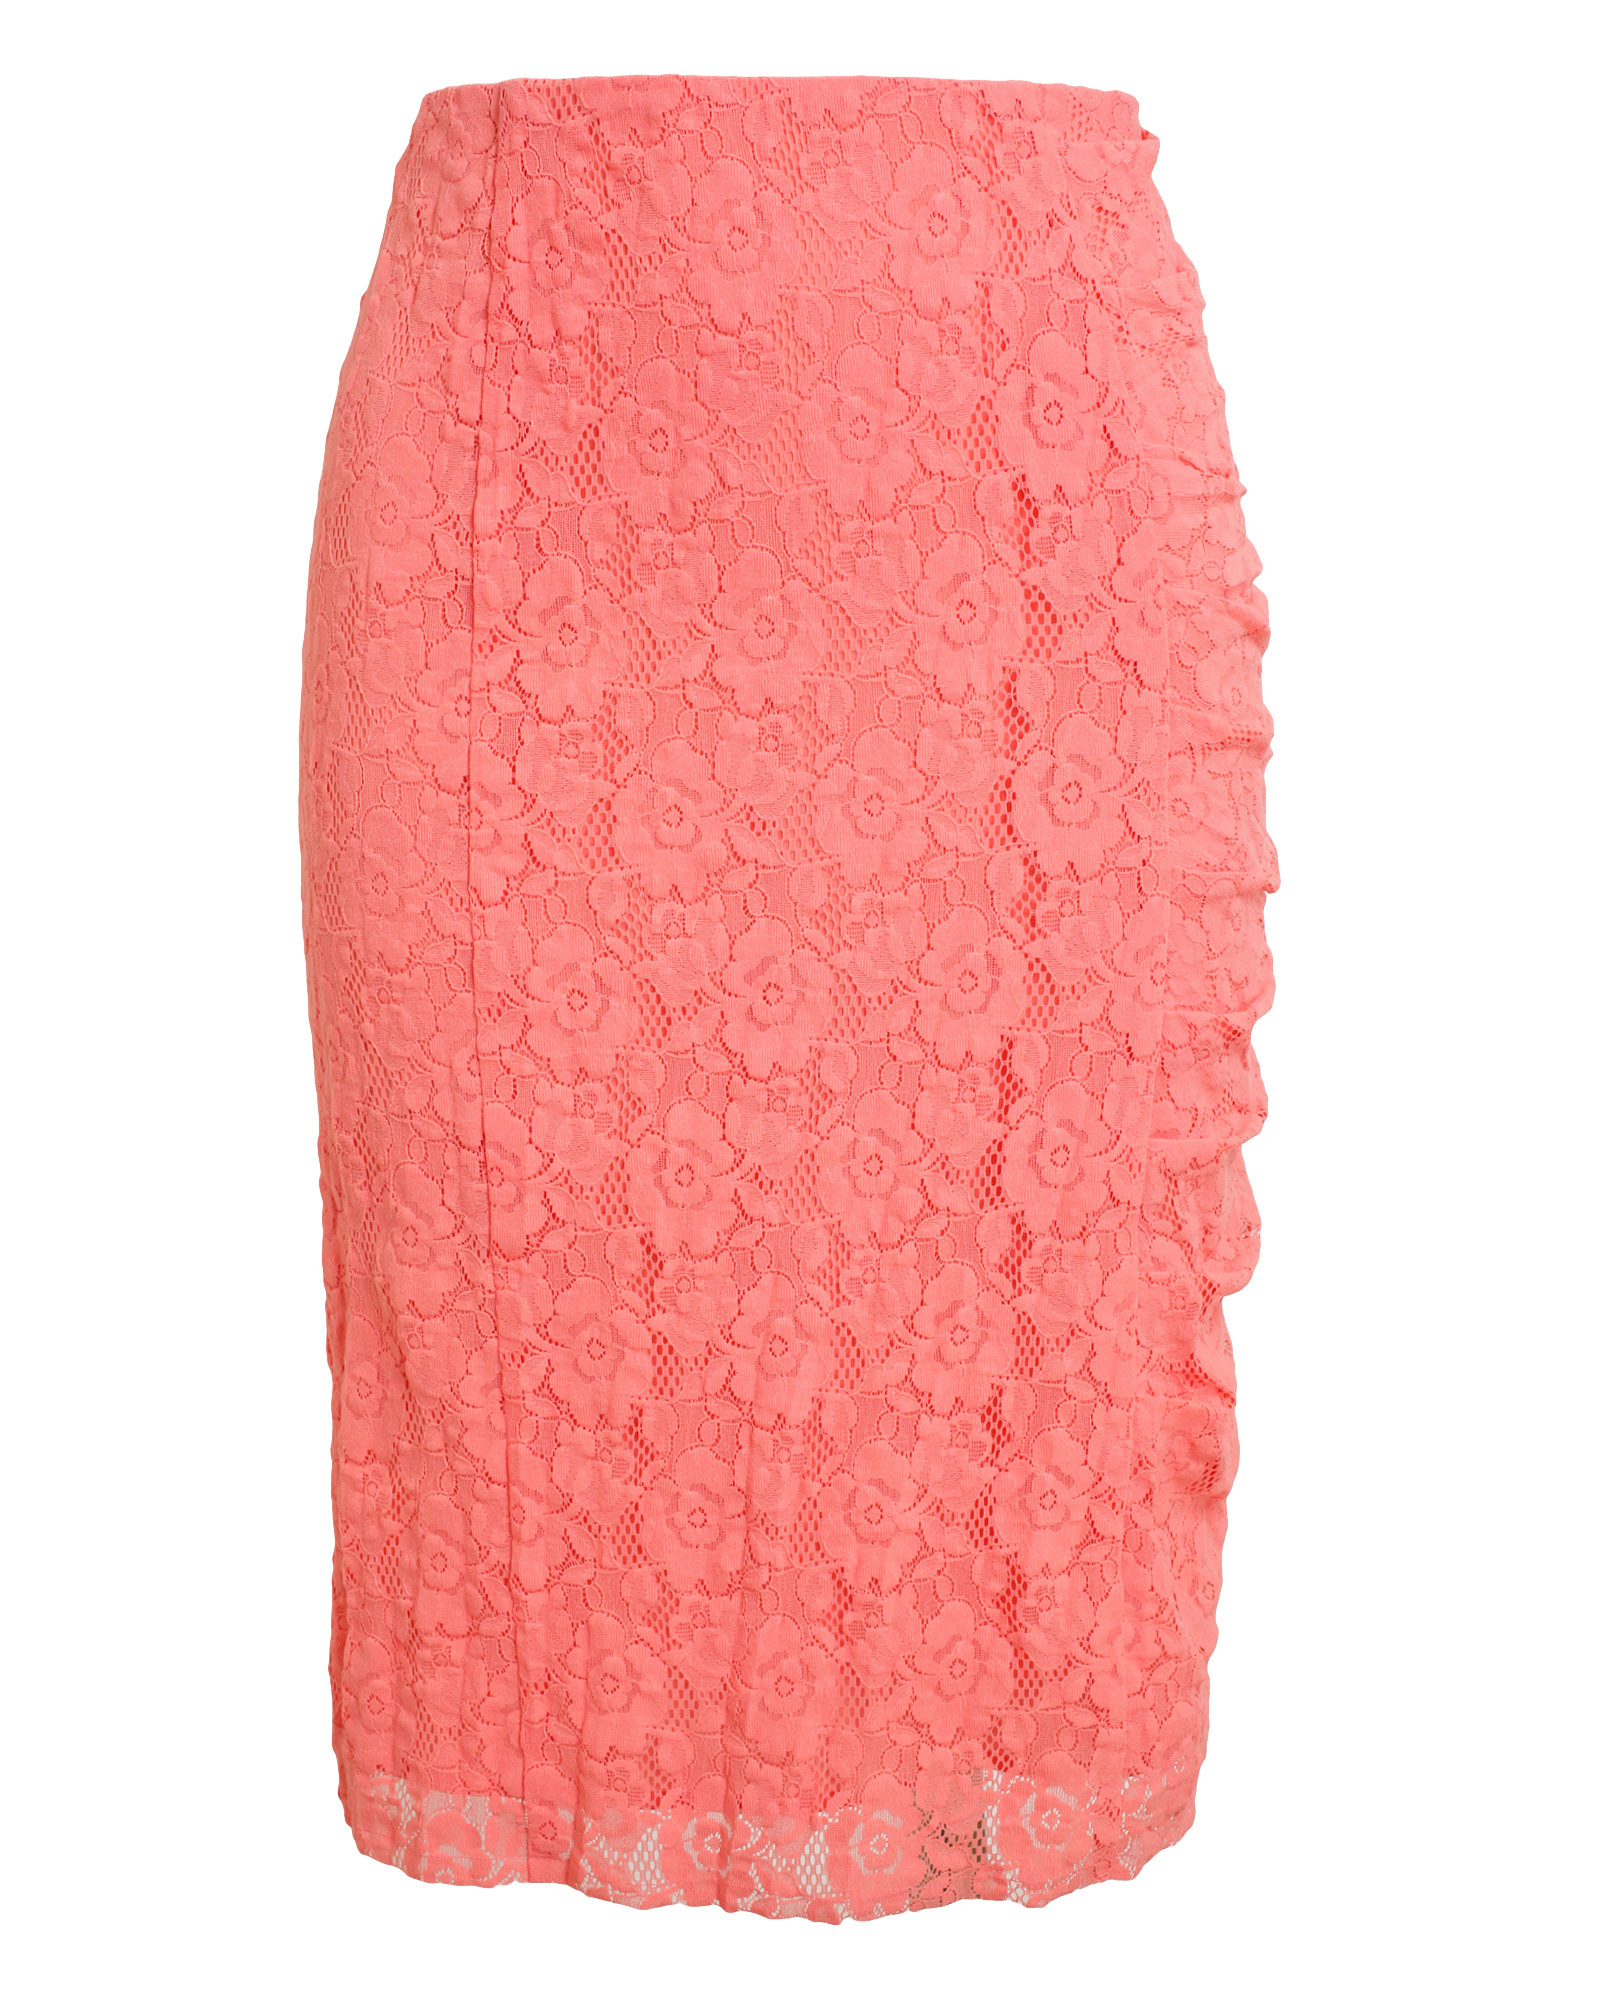 ricci floral lace pencil skirt in pink lyst